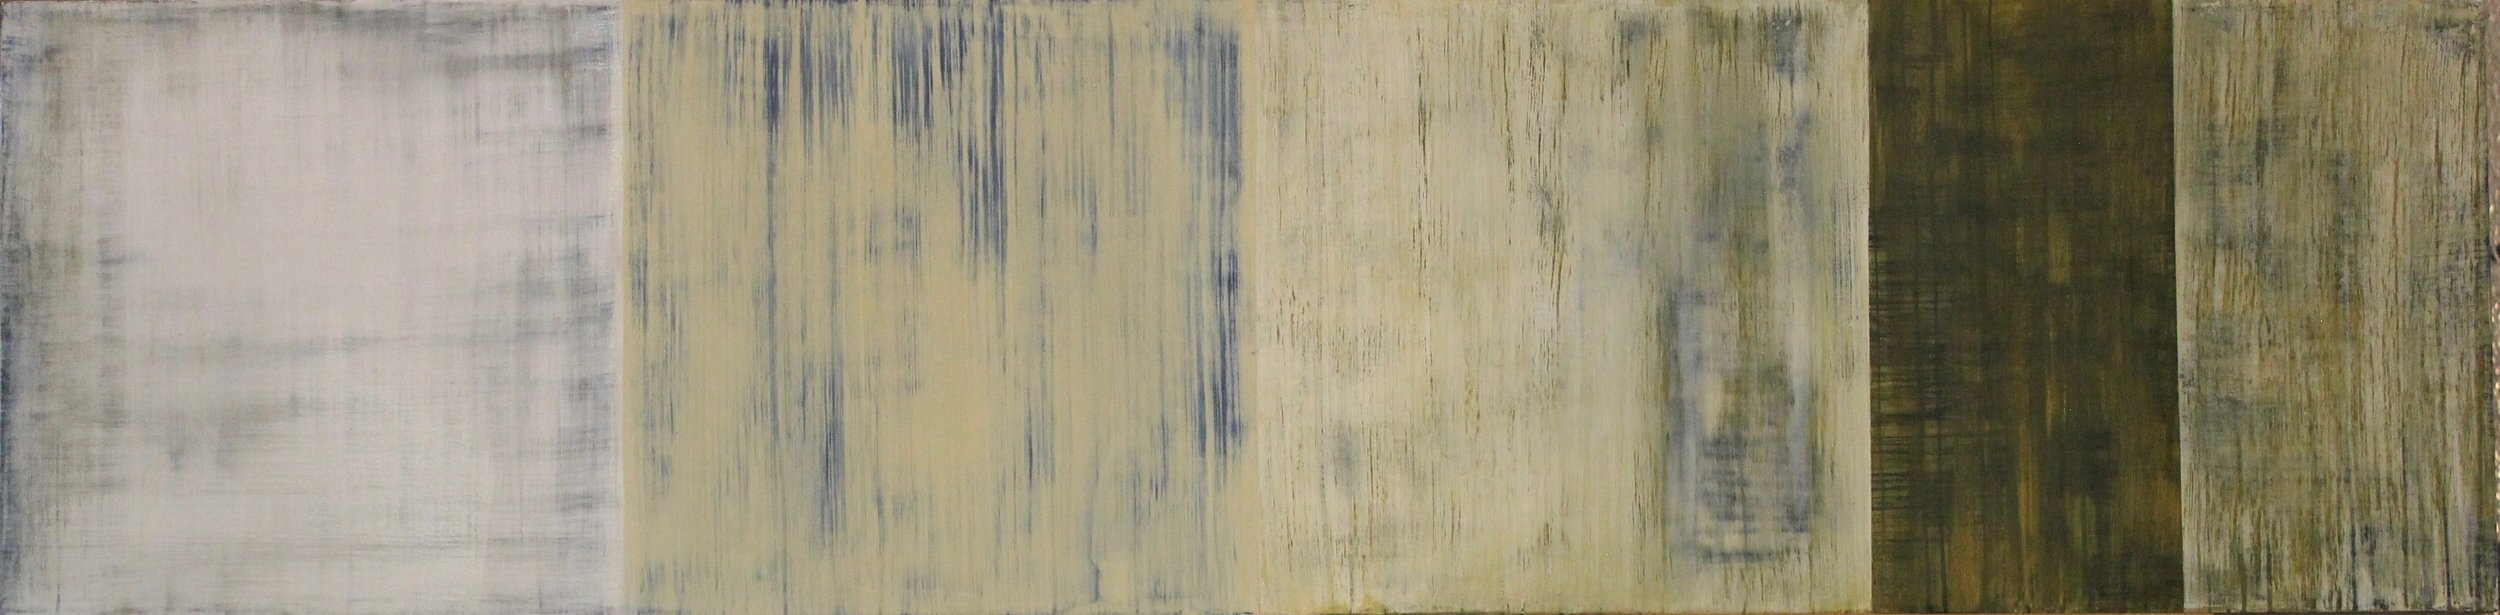 """Shifting Thought. Oil and wax on panel. 15"""" x 60"""". Private collection."""